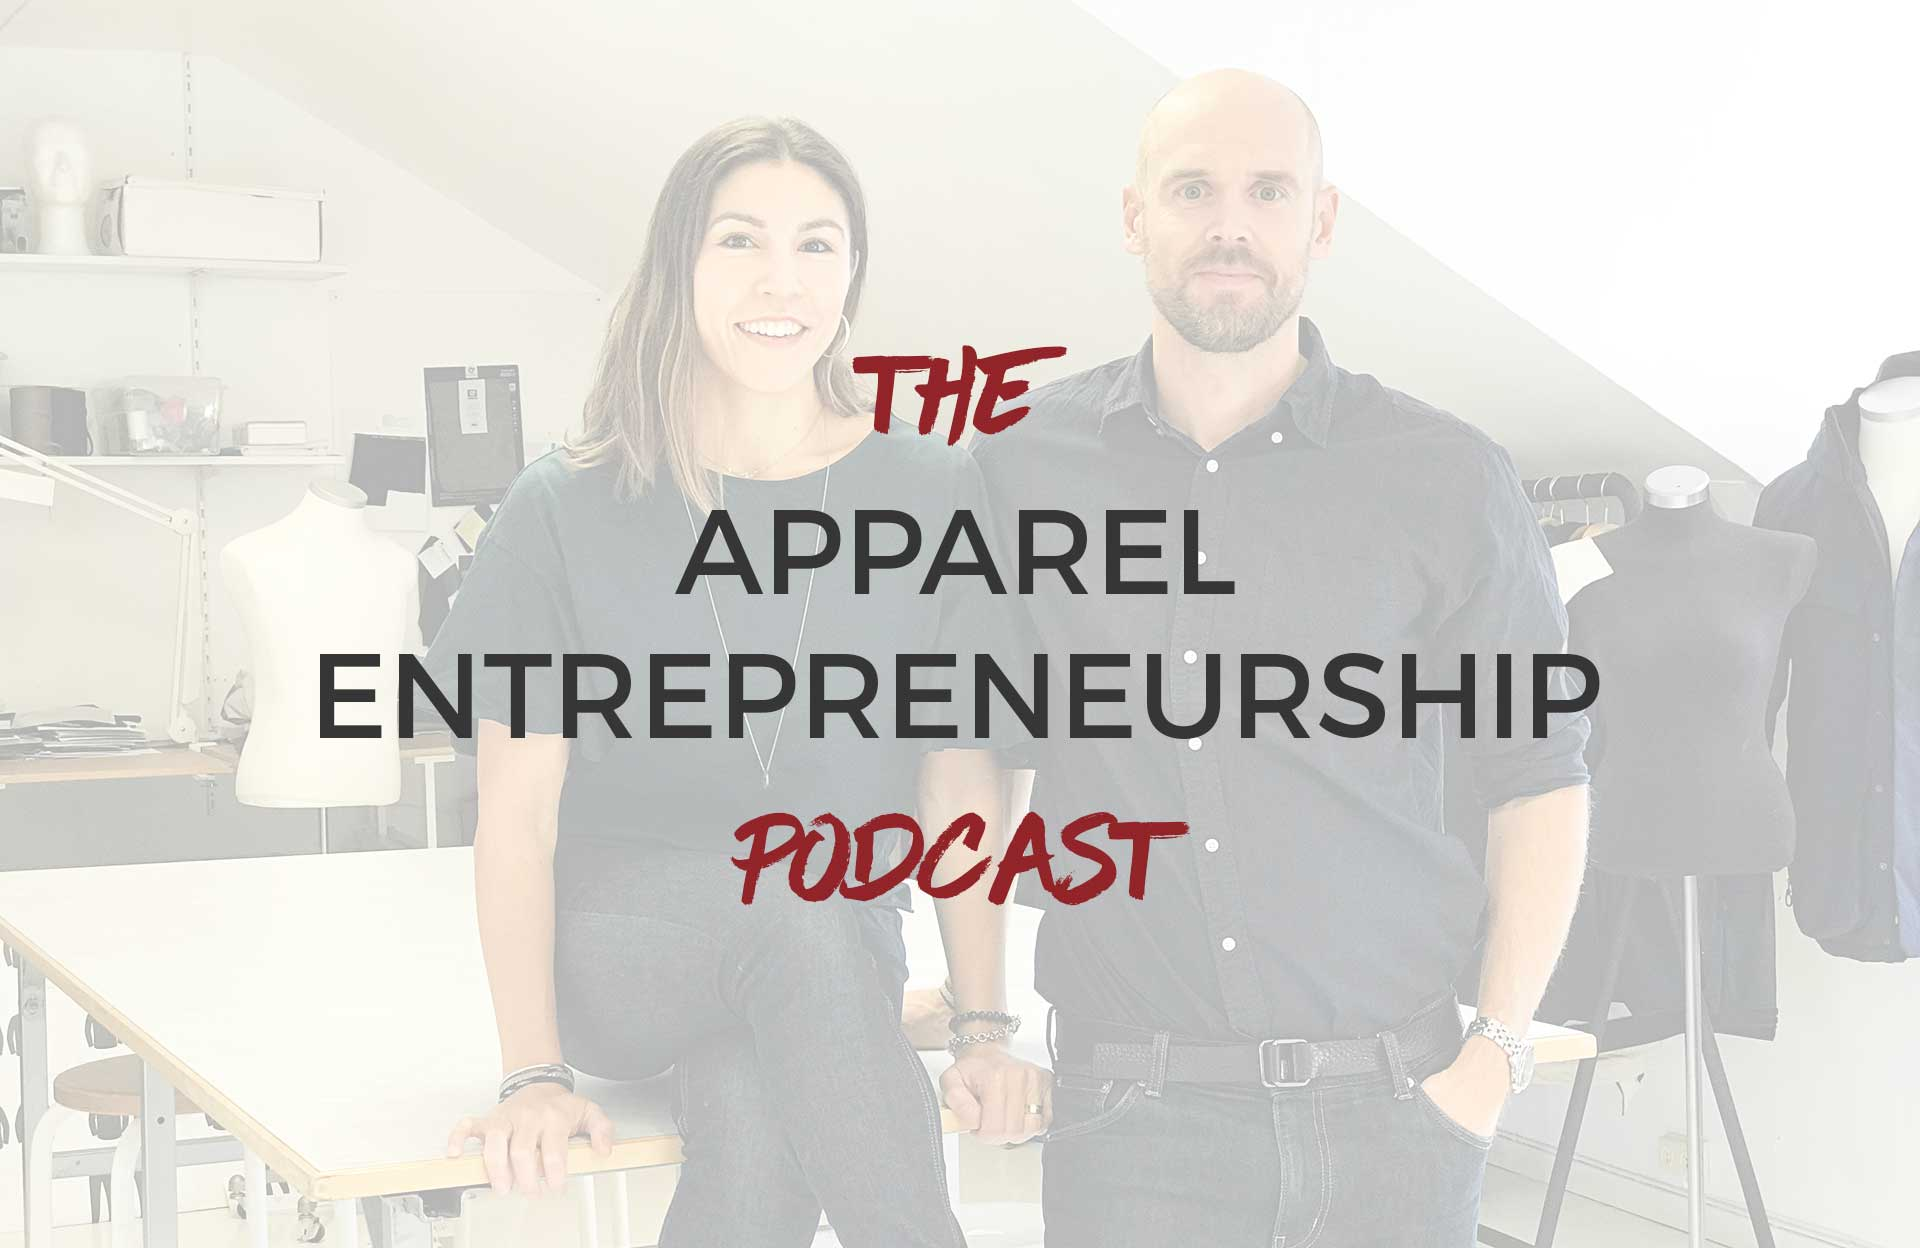 The Apparel Entrepreneurship Podcast